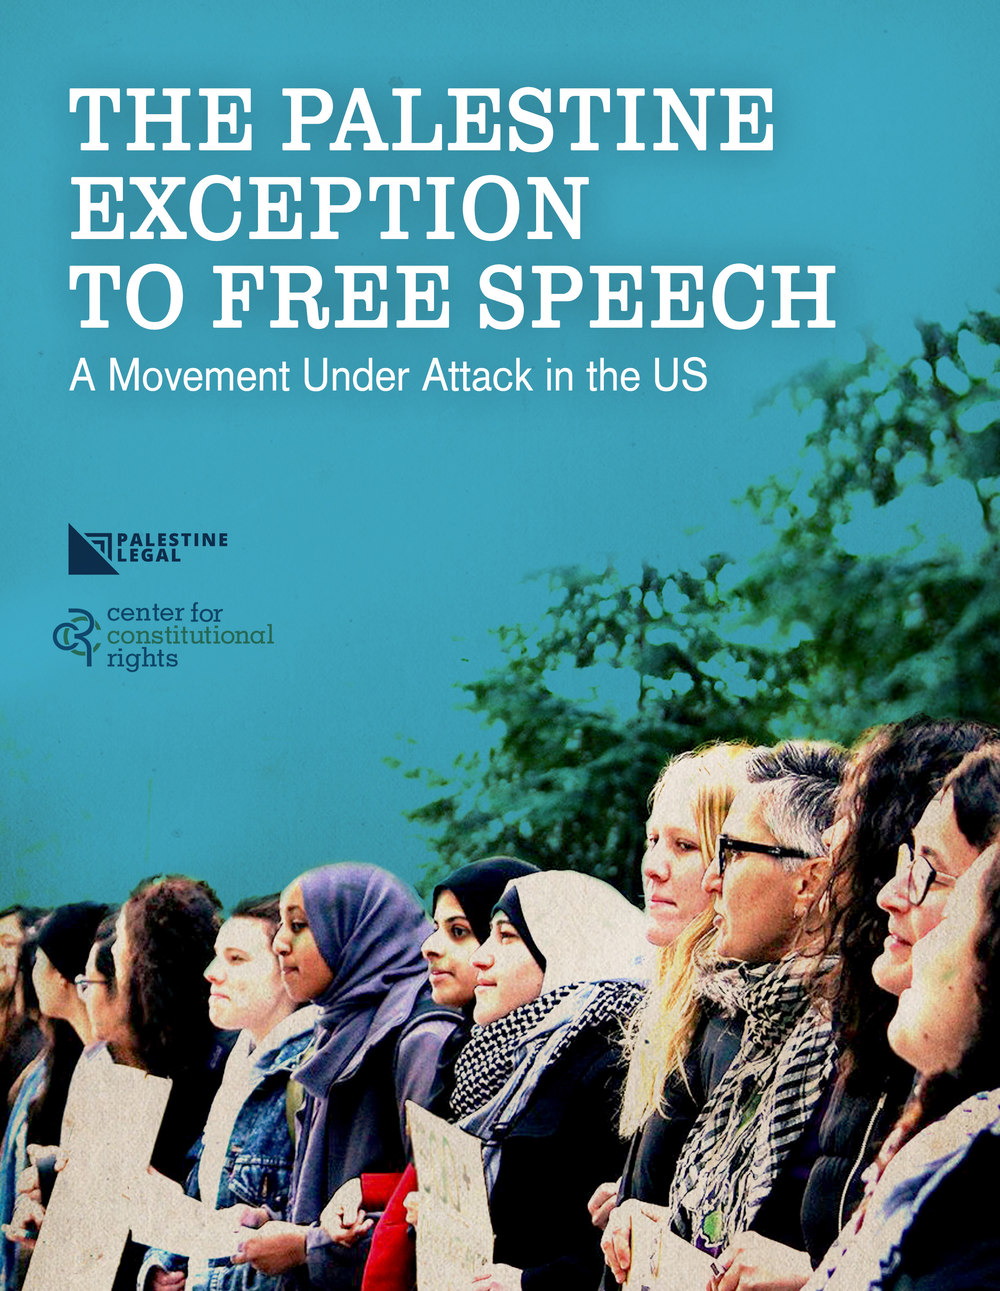 an example of growing threats to academic freedom in the united states Freedom of speech under threat in uk universities in the growing climate of islamophobia and the ratcheting up of fears of anti-semitism there will be efforts to make any criticism of israel taboo on campus and be better prepared to defend academic freedom.